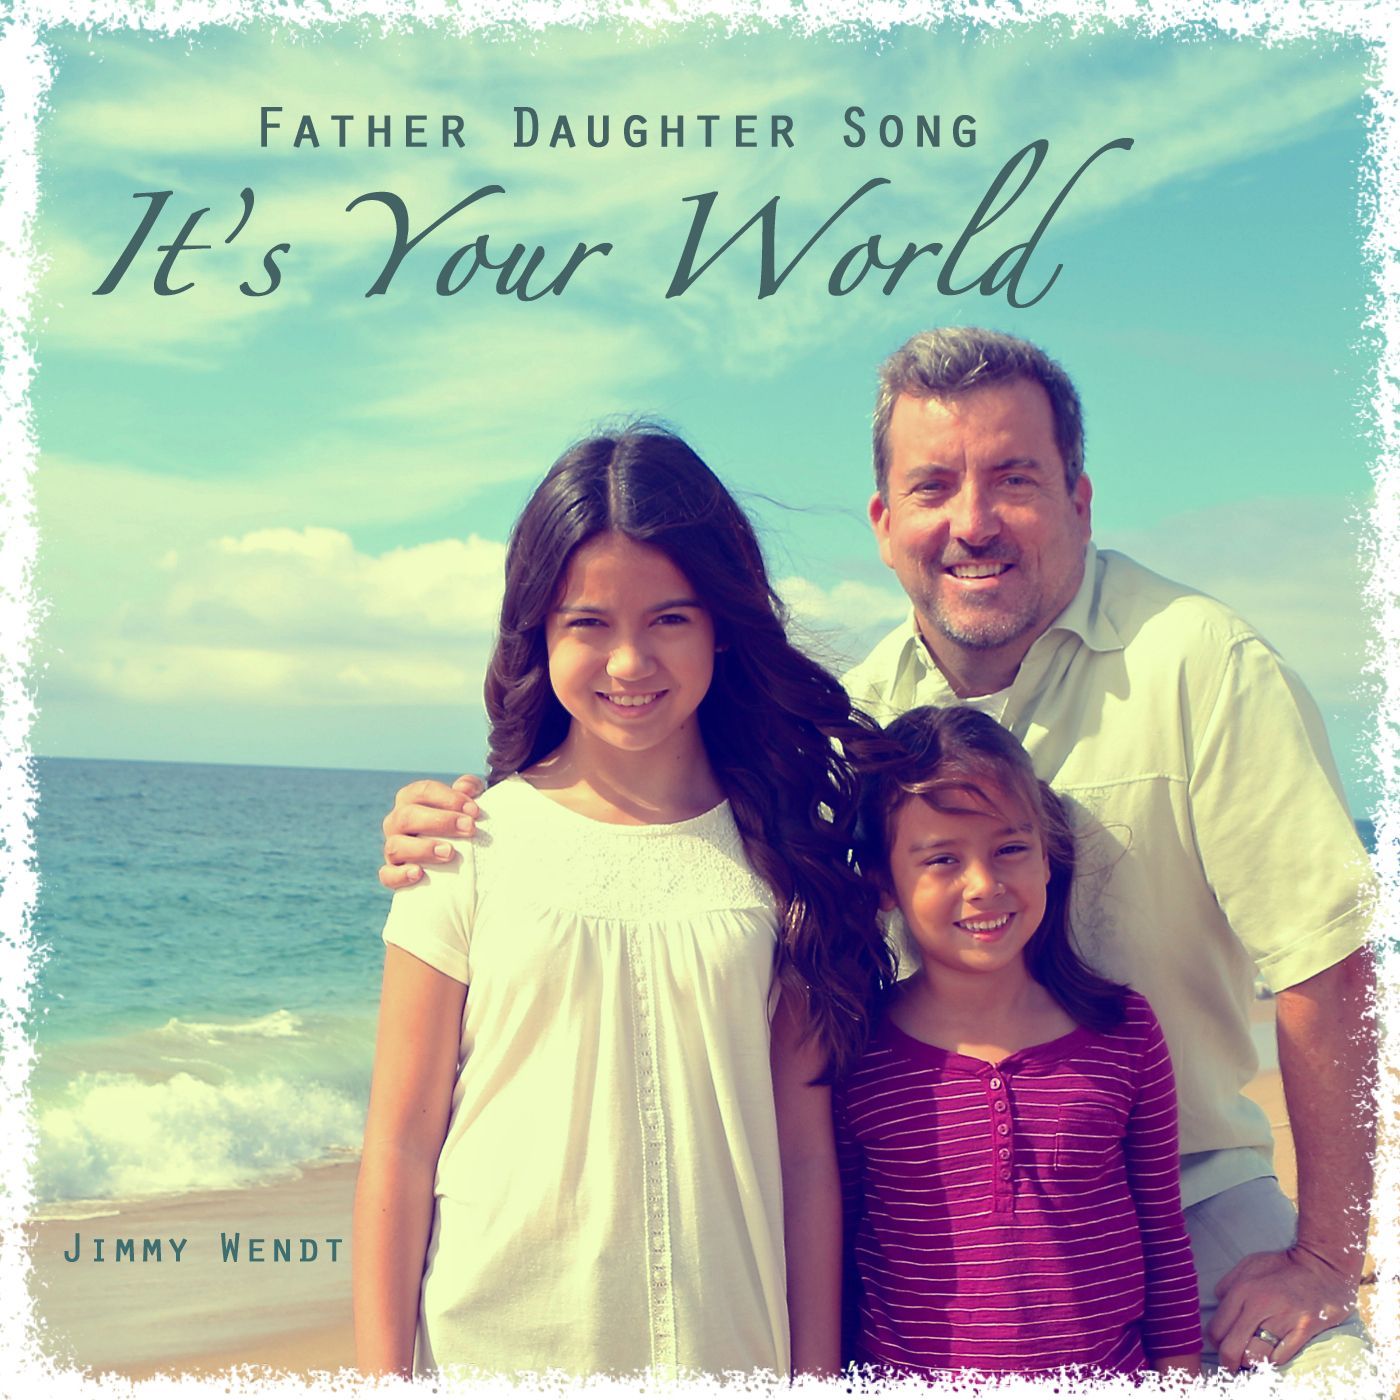 Father Daughter Song It's Your World